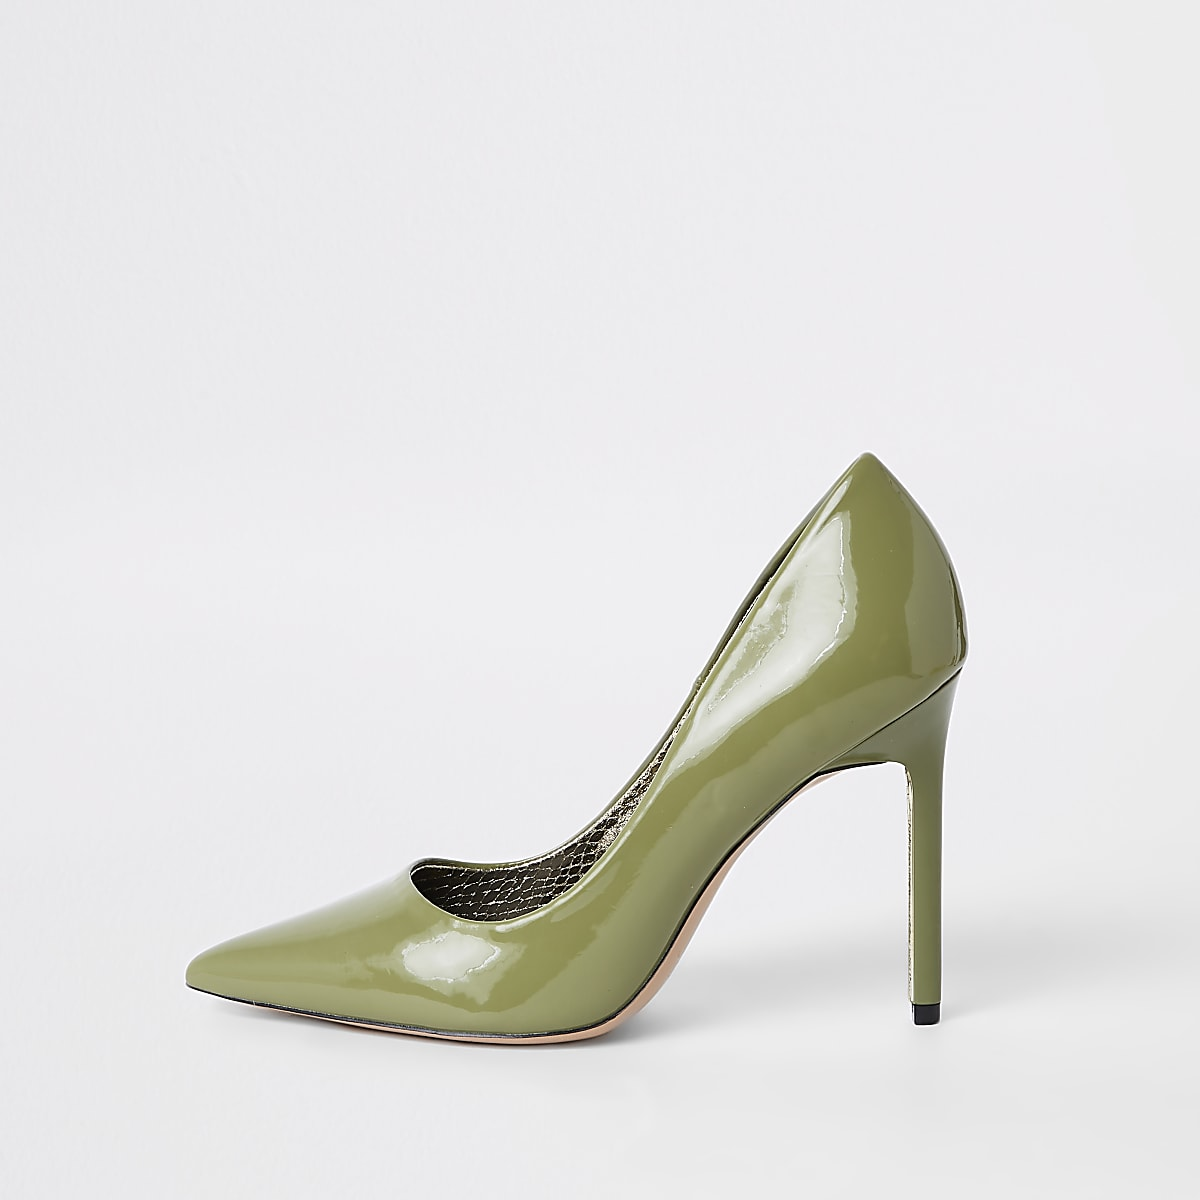 5e13c064fc Green pointed skinny heel court shoes - Shoes - Shoes & Boots - women